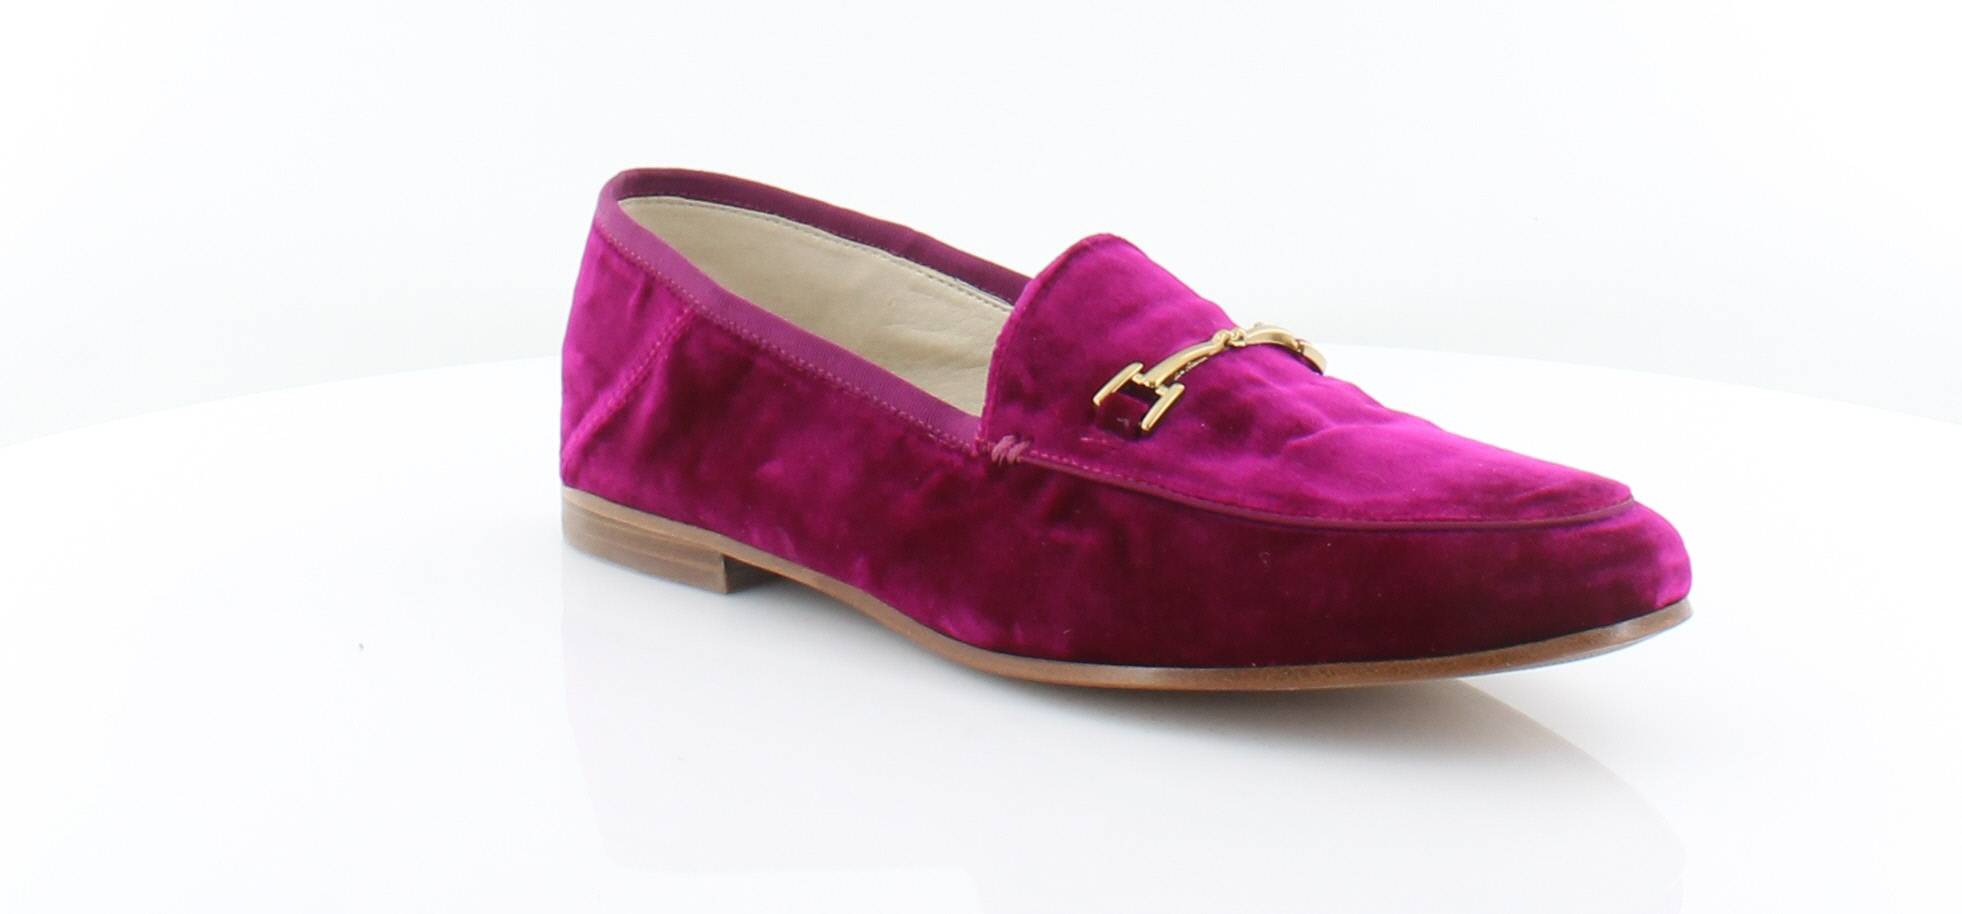 5750463eb Sam Edelman Loraine Pink Womens Shoes Size 10 M Flats for sale ...